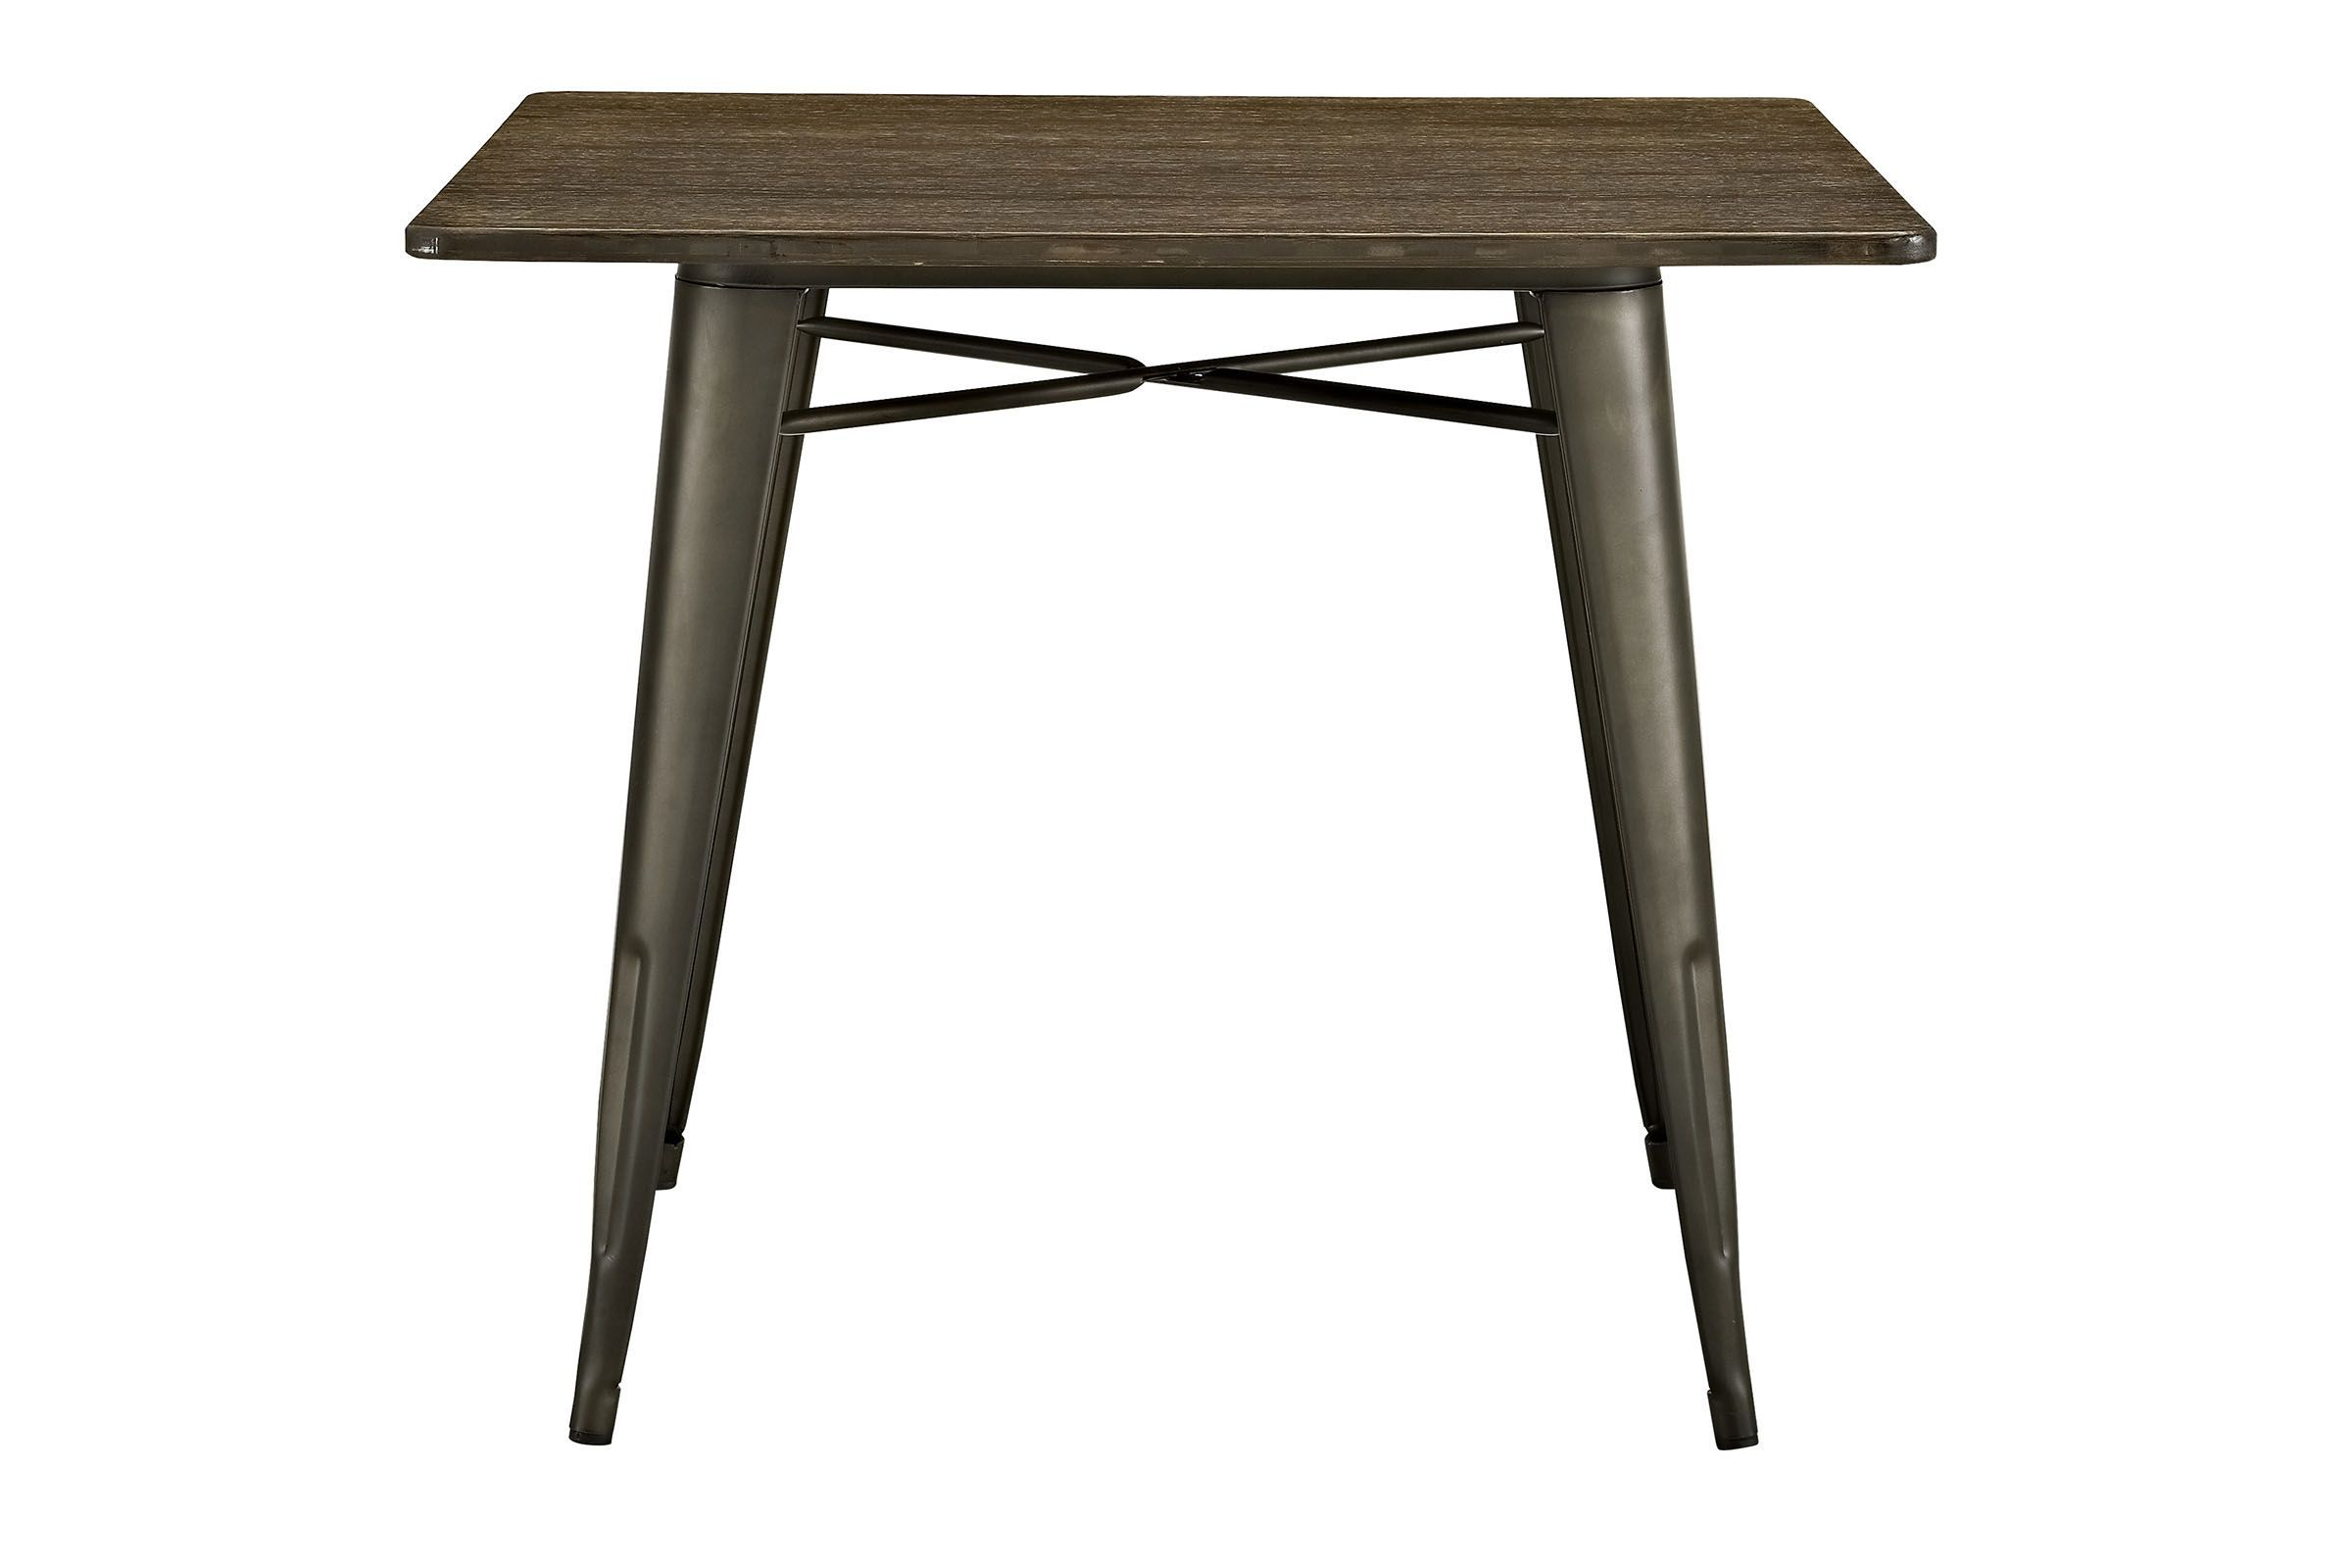 Alacrity 36 Square Wood Dining Table By Modway In 2020 Square